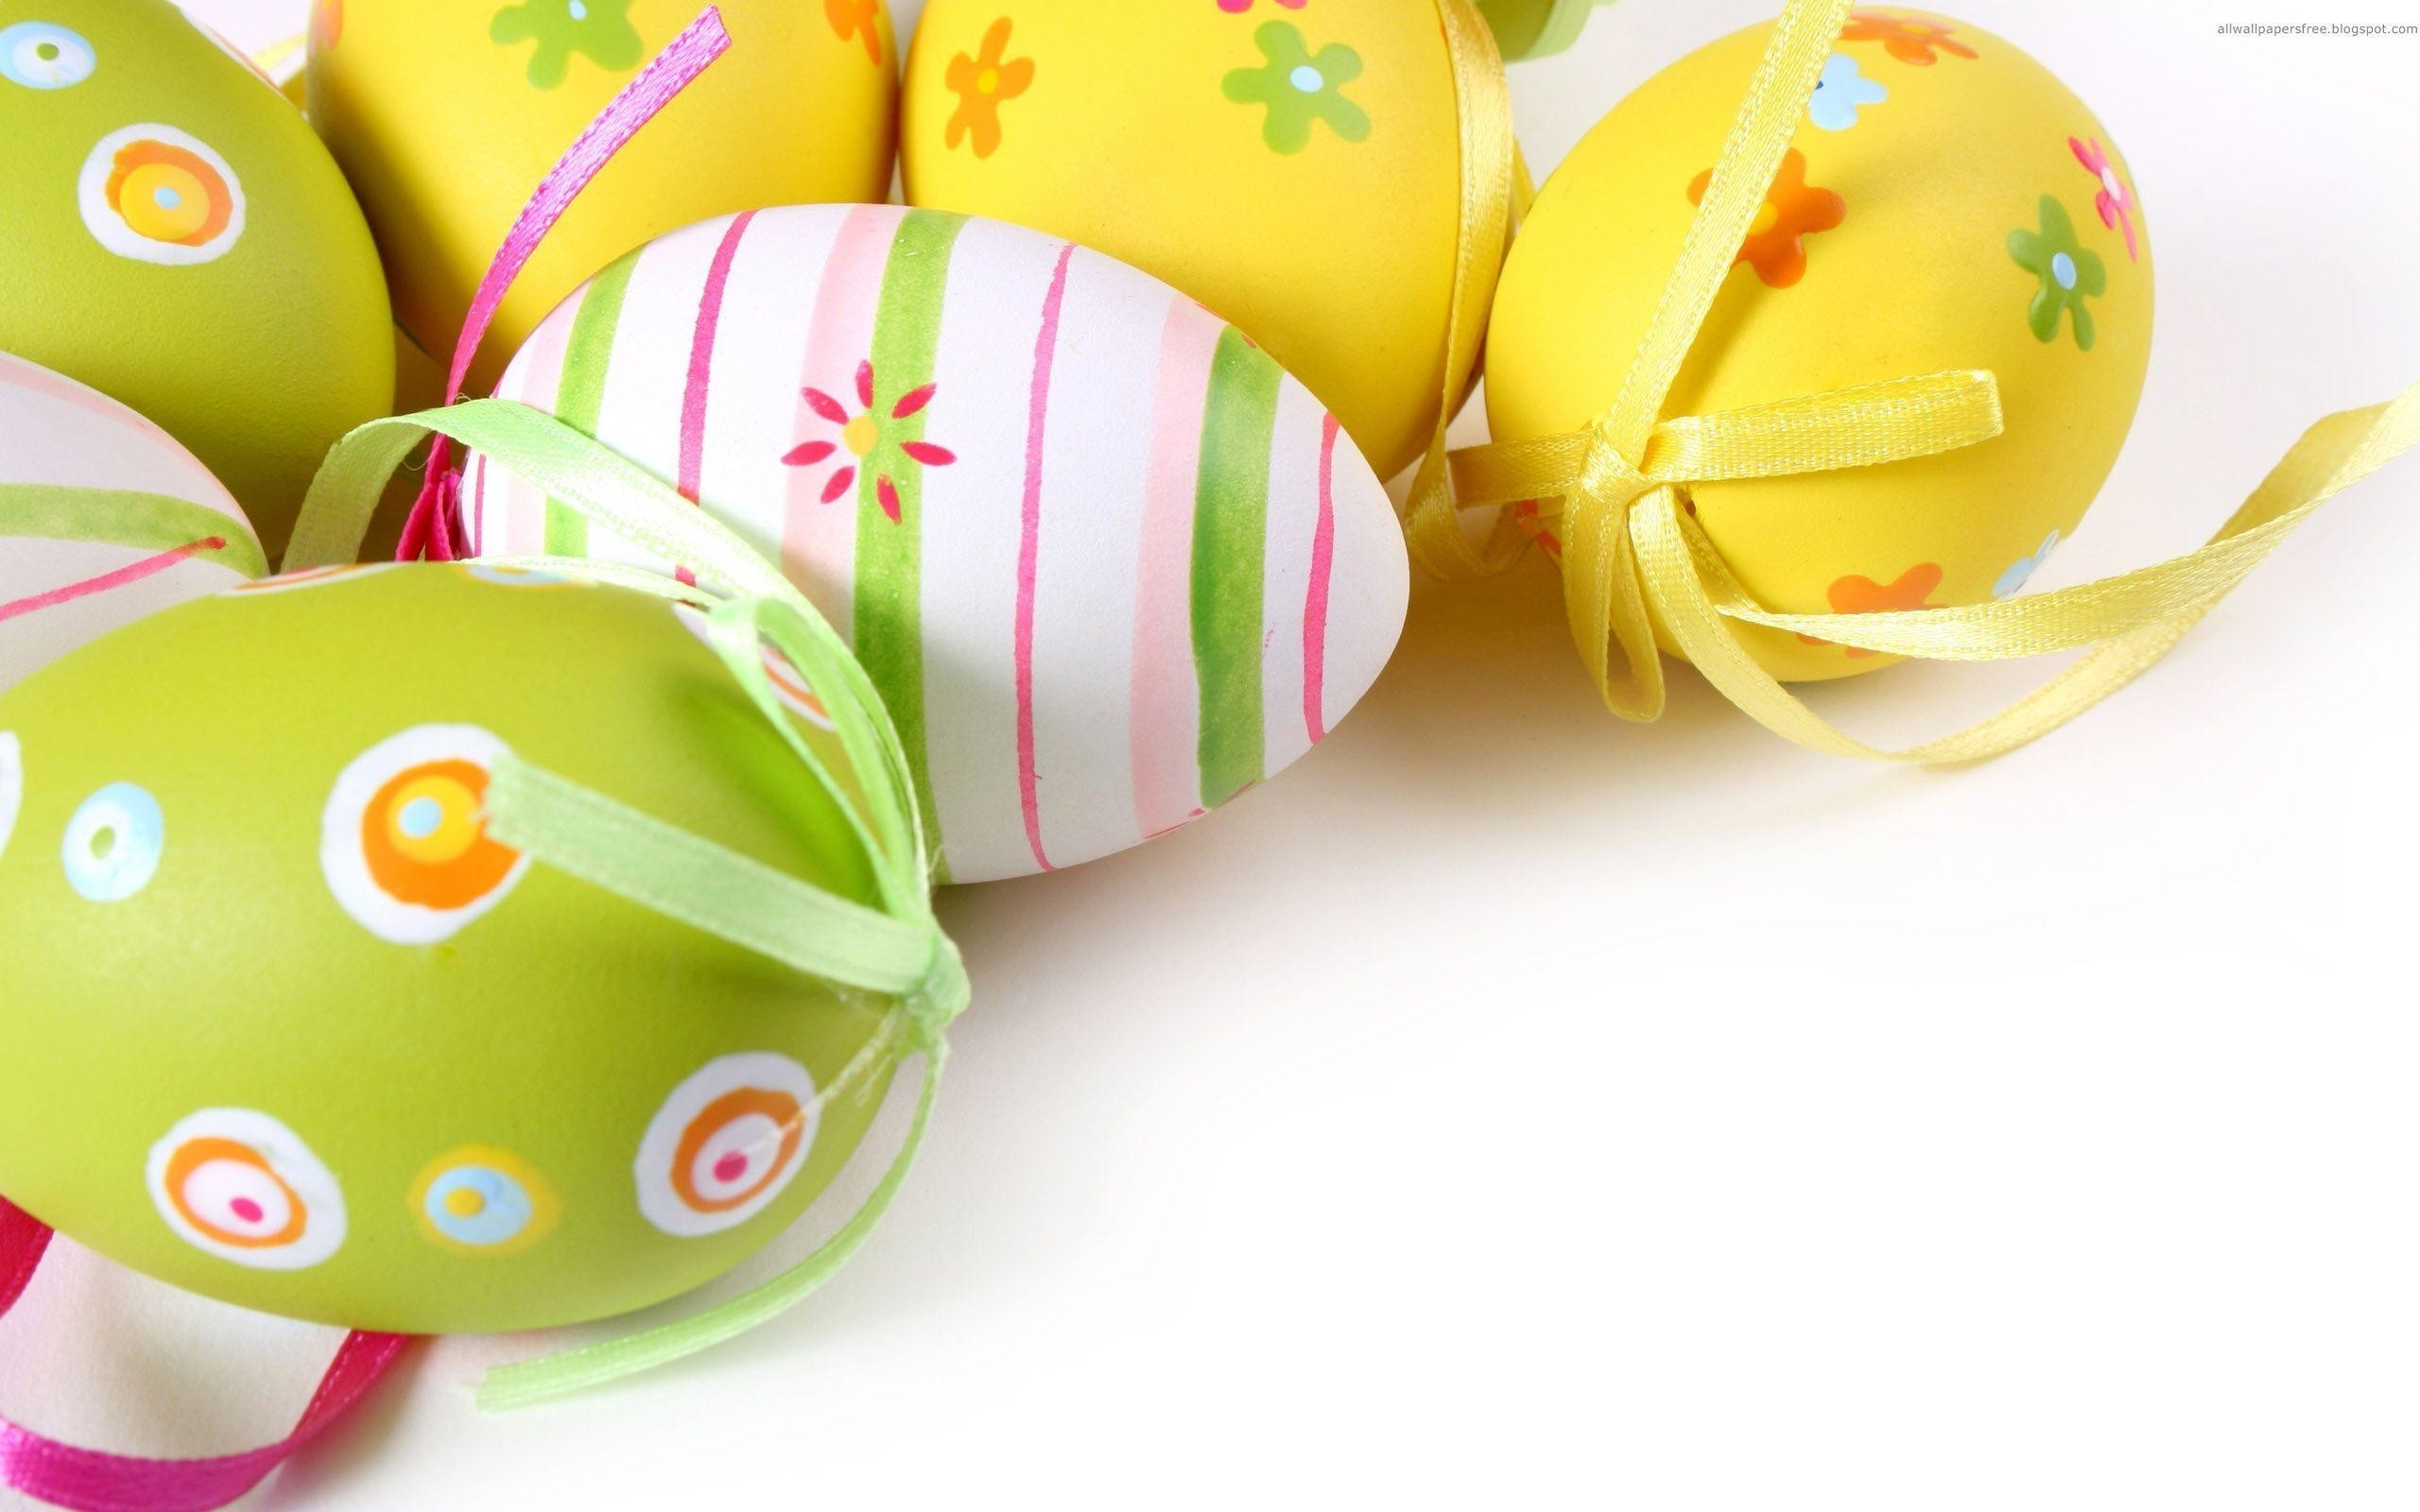 2560x1600 Wallpapers For > Easter Bunny Wallpaper Backgrounds